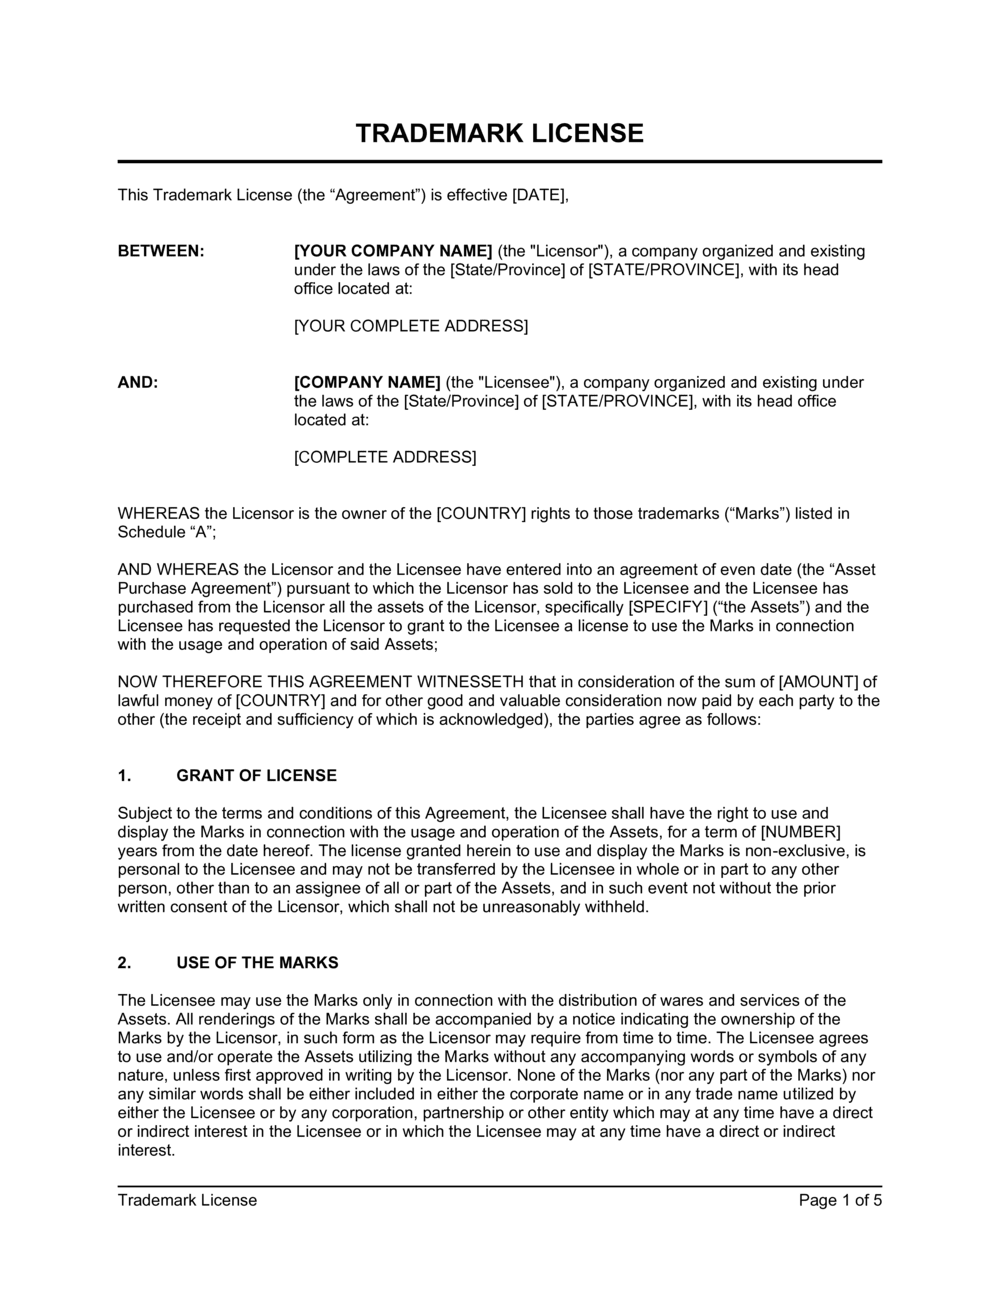 Business-in-a-Box's Trademark License Template